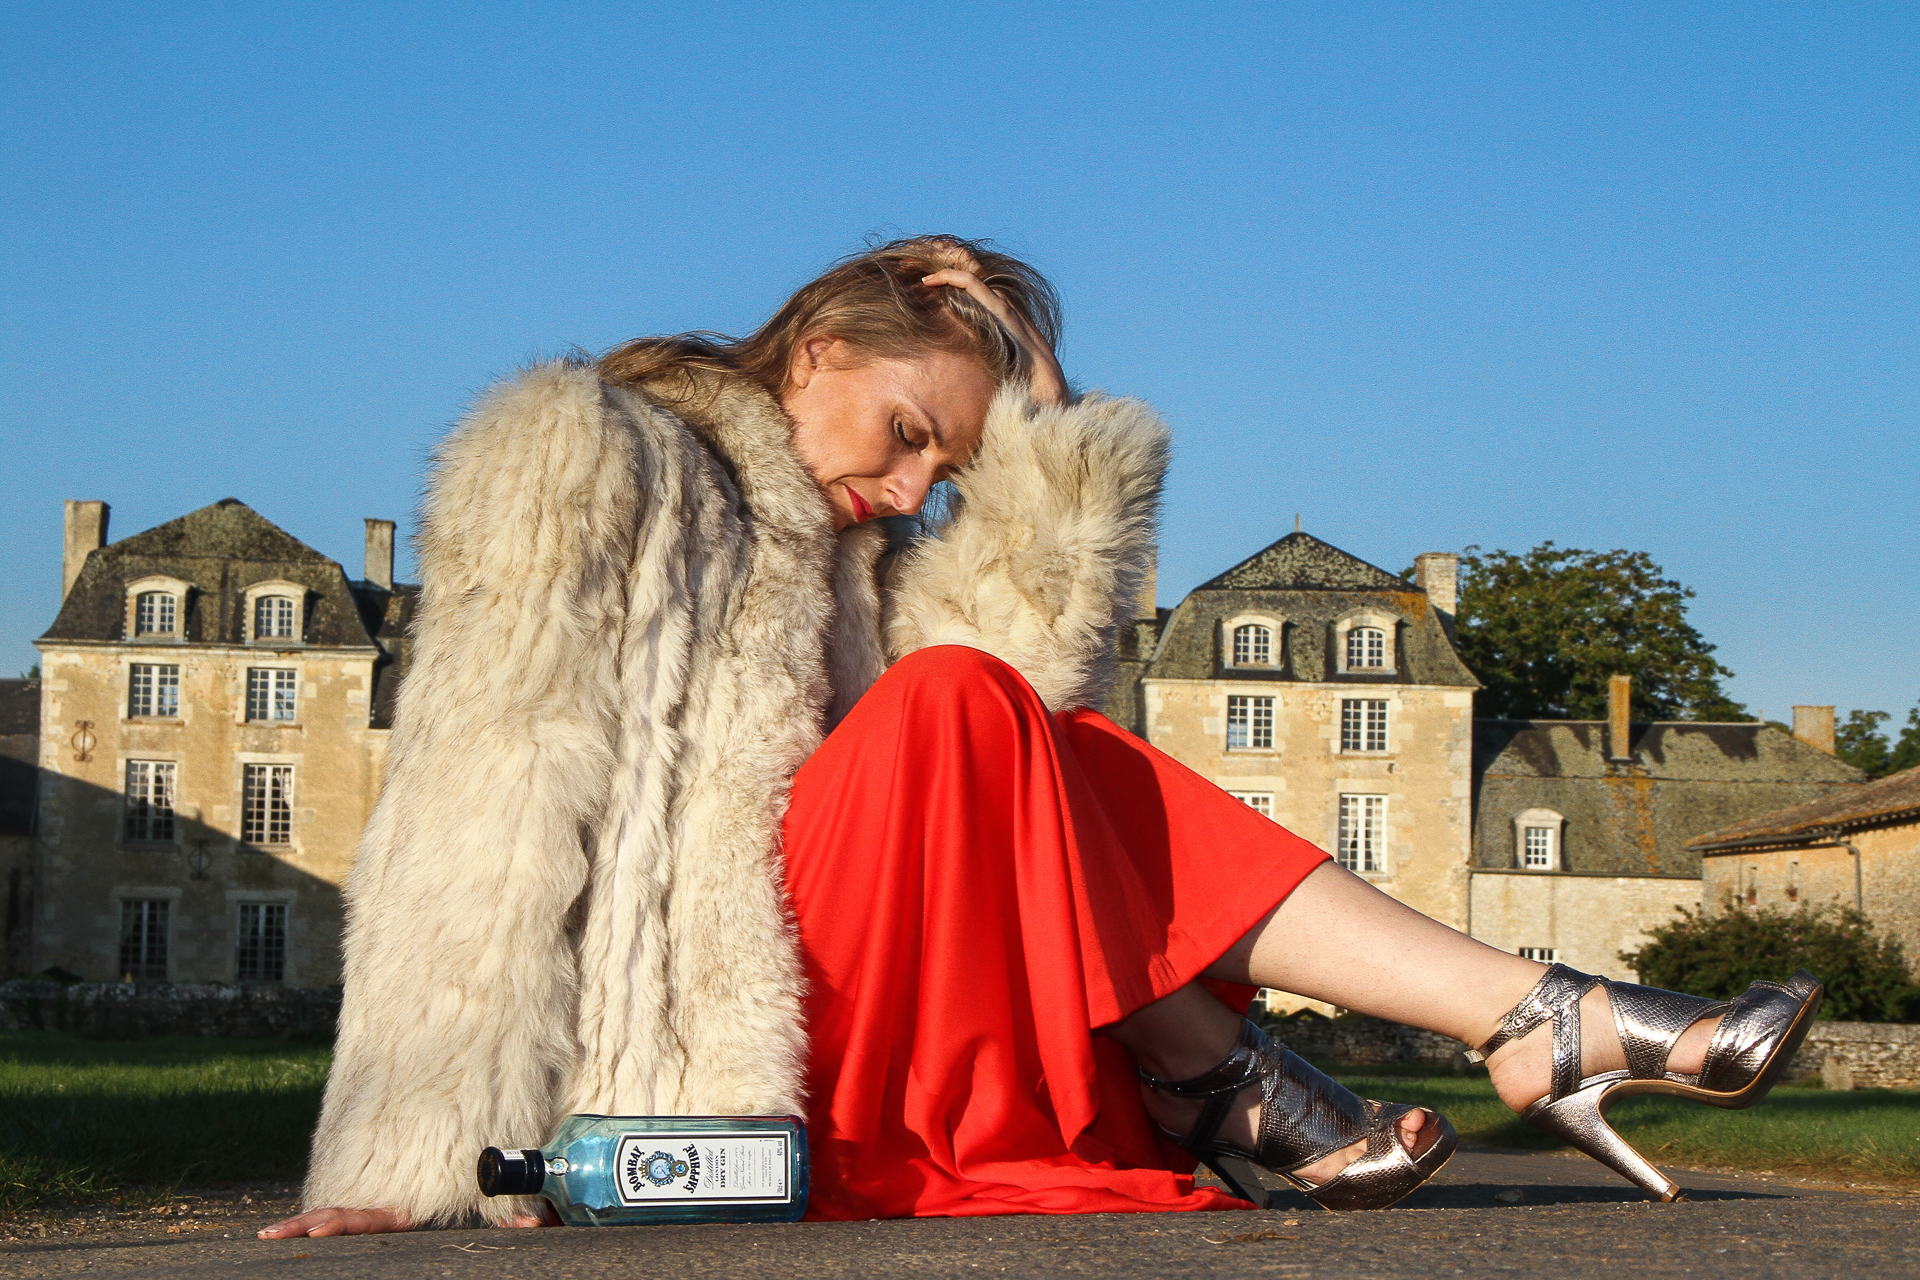 Liz is seen in a red evening gown wearing a fake fur coat, and silver heels, sat on the floor in front of a French Chateau. She has both legs tucked up towards her body, her left hand is on her bowed head, and her fingers are in her hair.  By her side there is an empty Bombay Sapphire bottle. Her long blonde hair is messy, suggesting it was an eventful night.